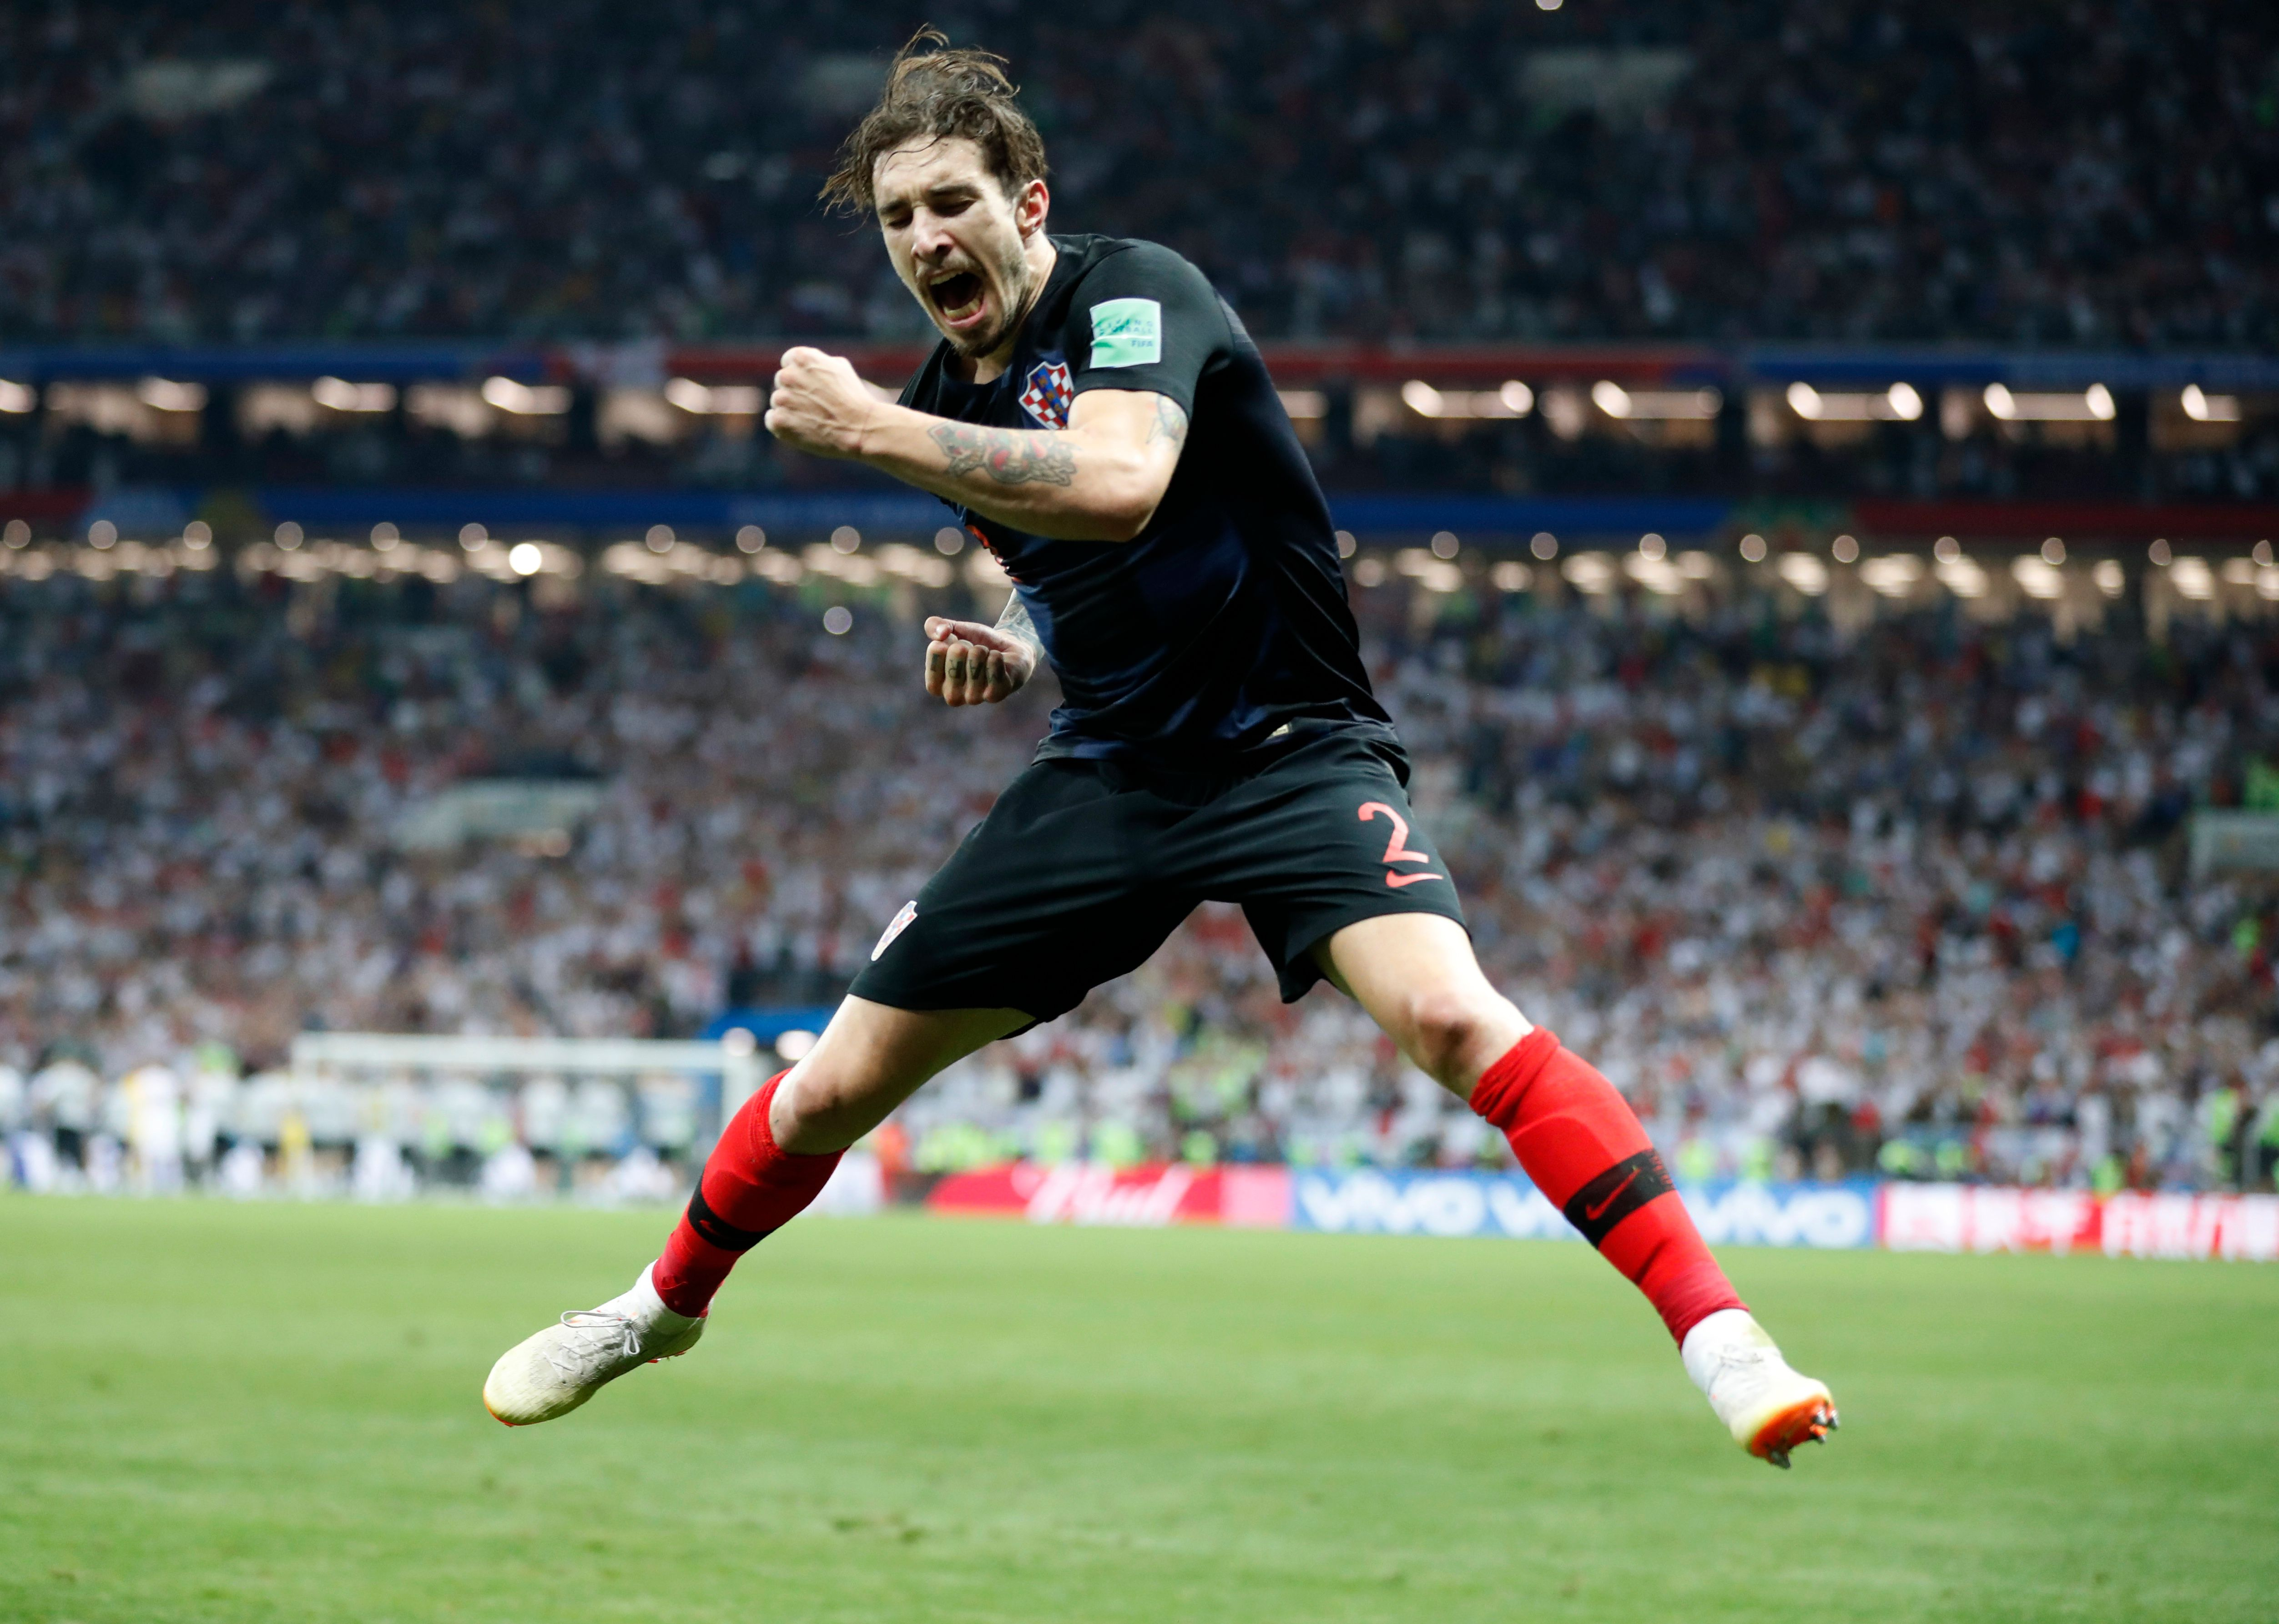 Paths to the final: France's was simple, Croatia's brutal